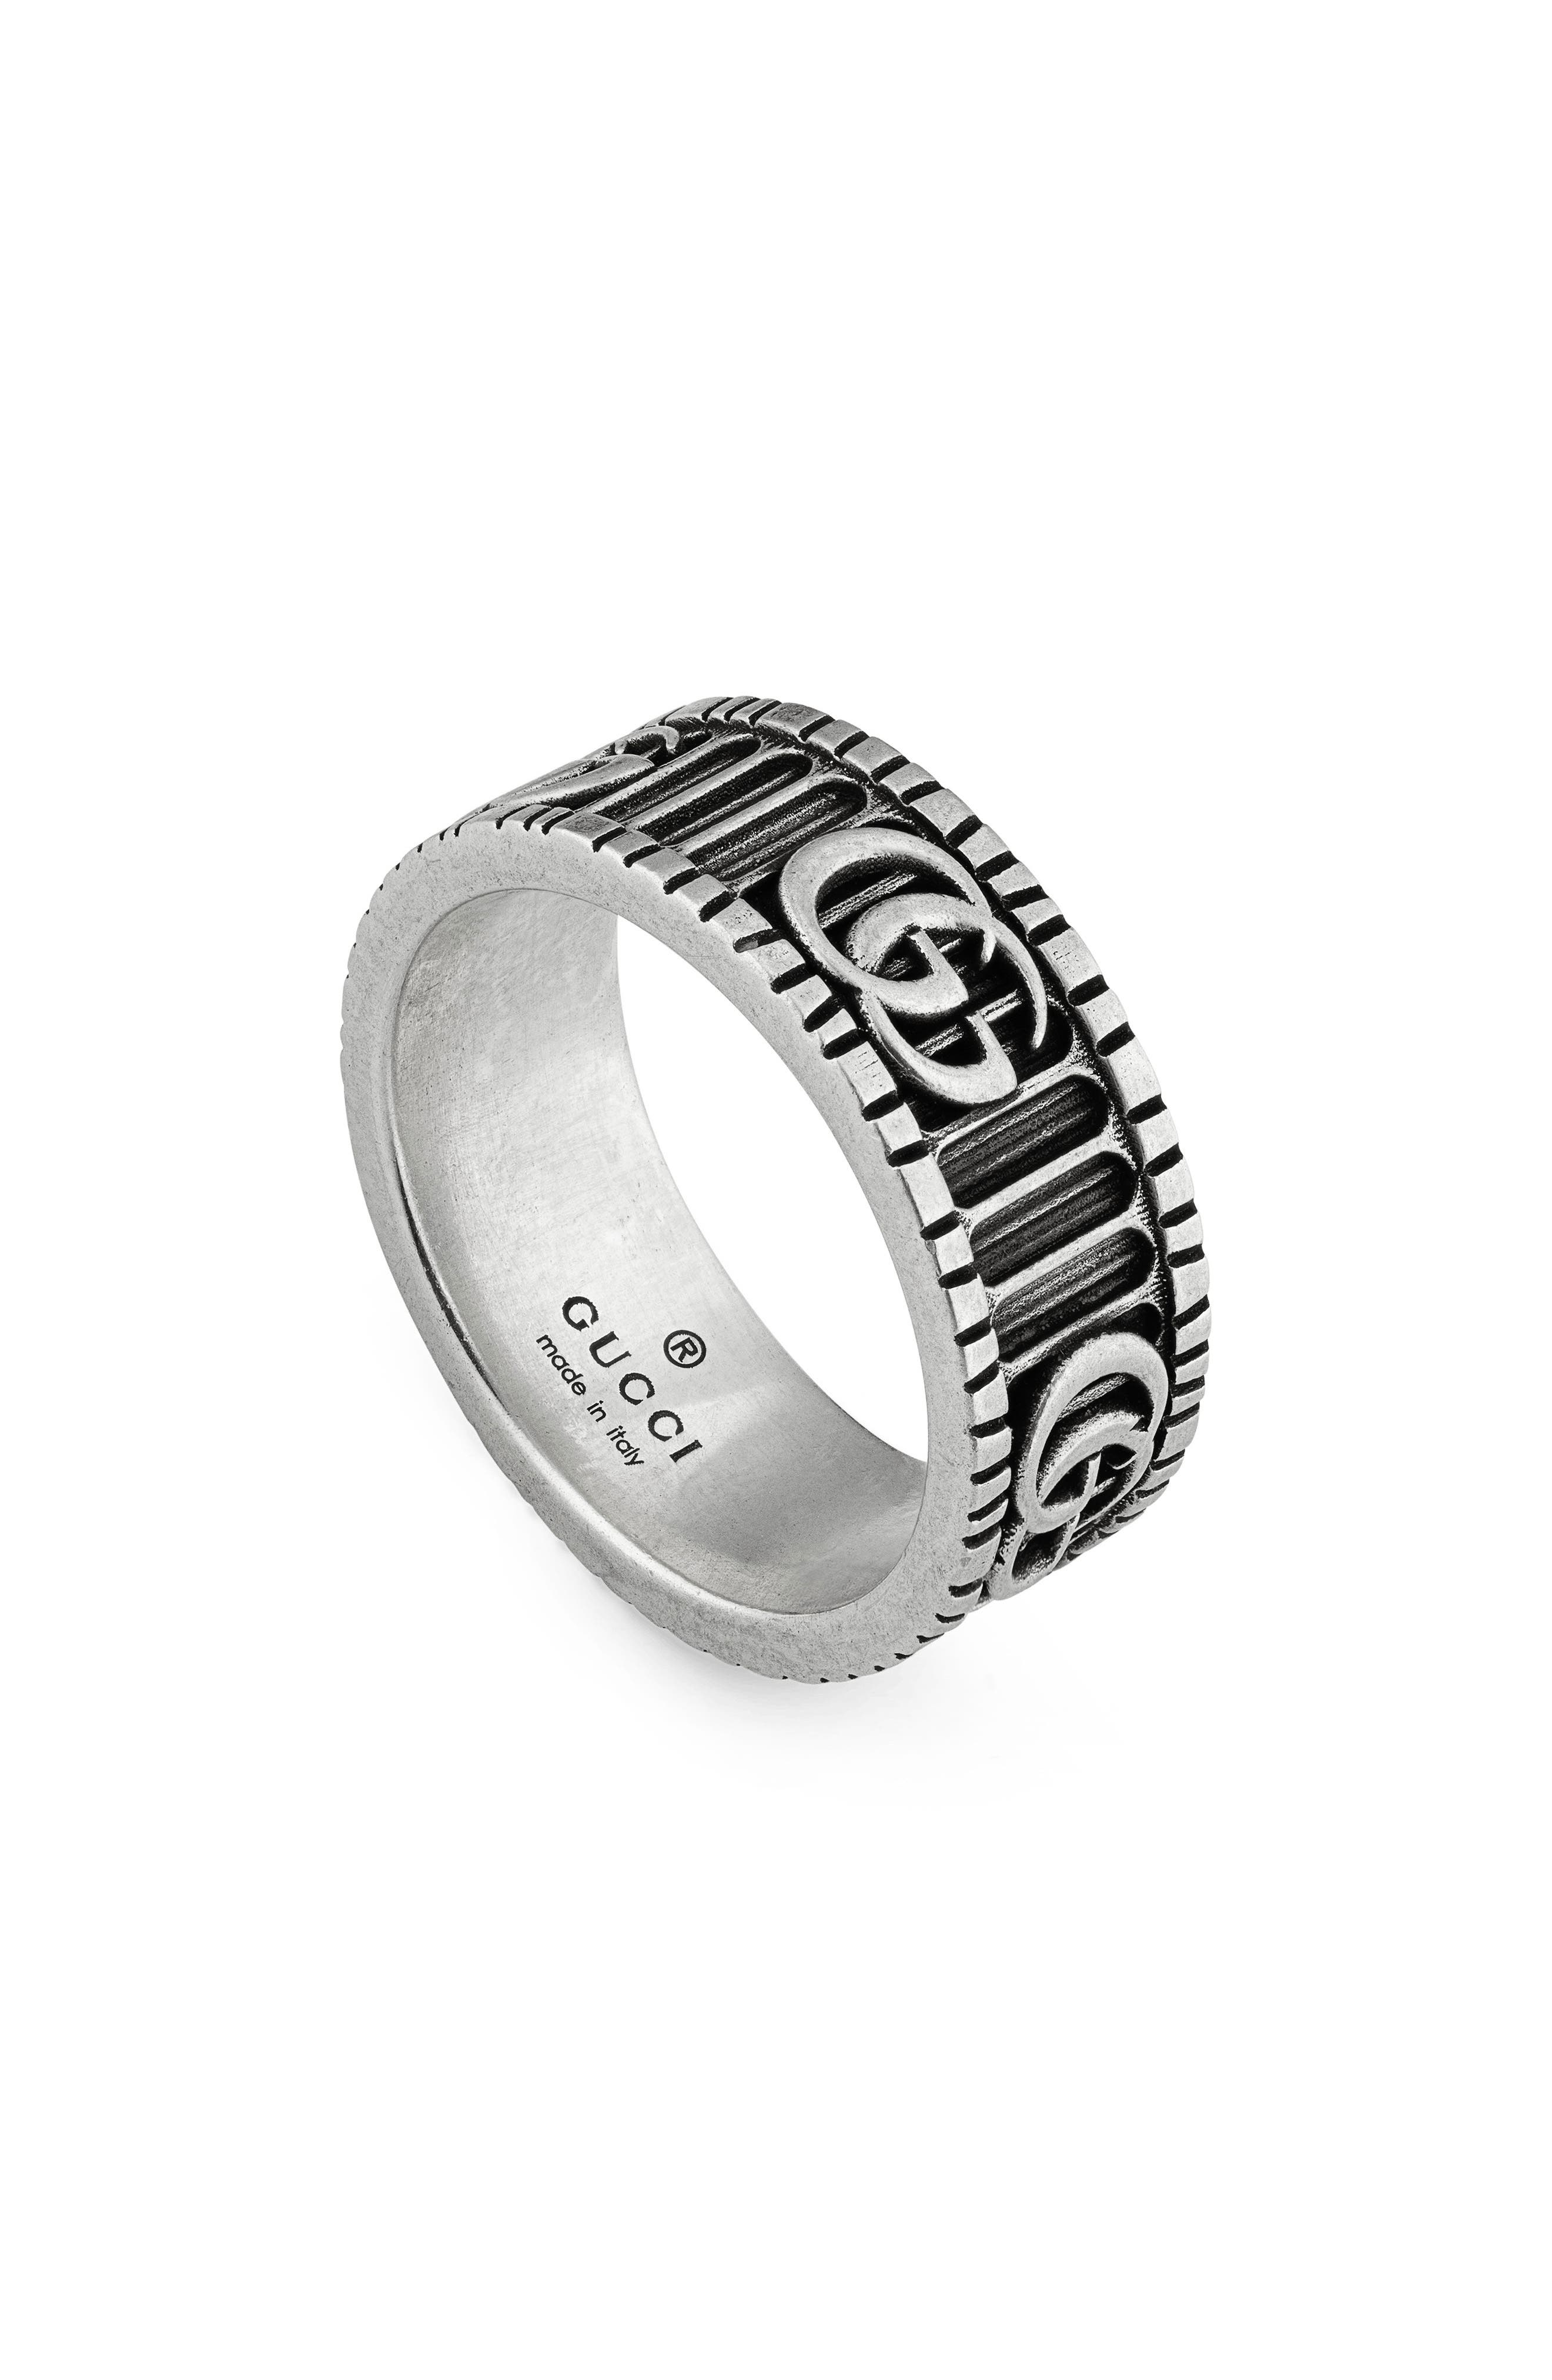 GG Marmont Band Ring,                             Main thumbnail 1, color,                             STERLING SILVER